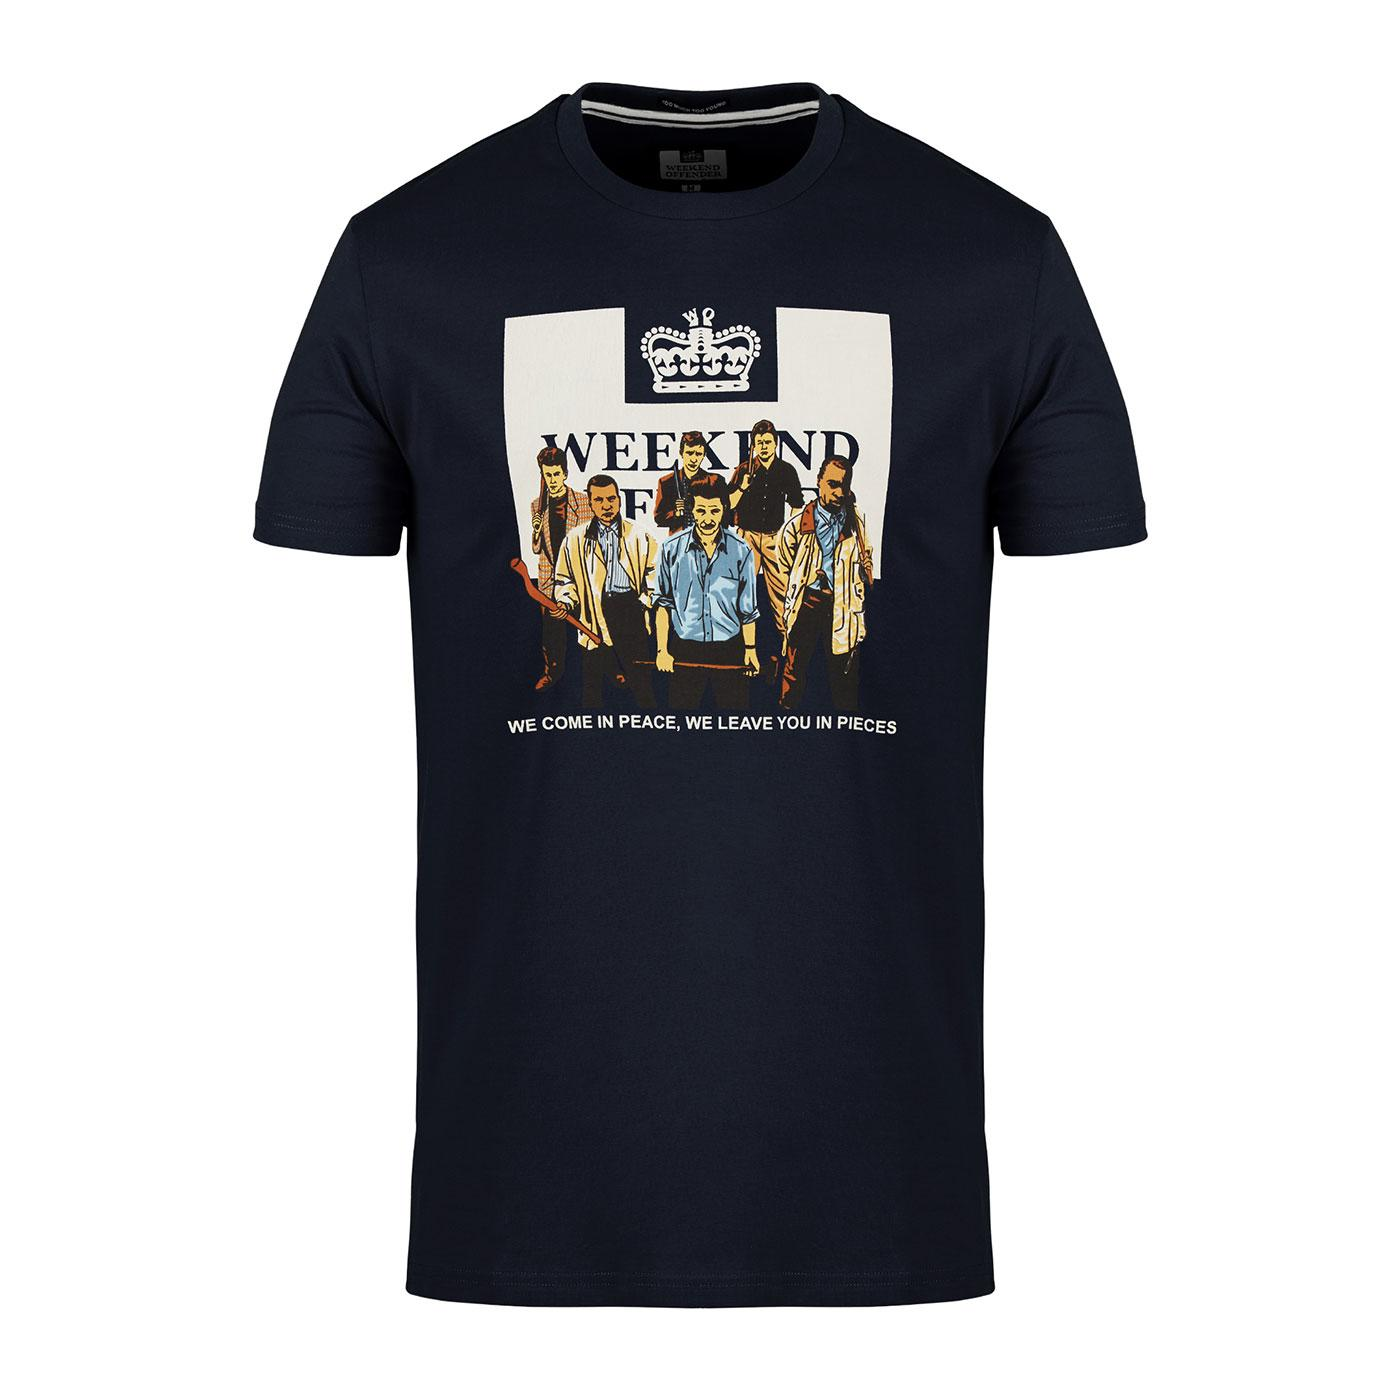 '89 WEEKEND OFFENDER The Firm Casuals Logo T-Shirt